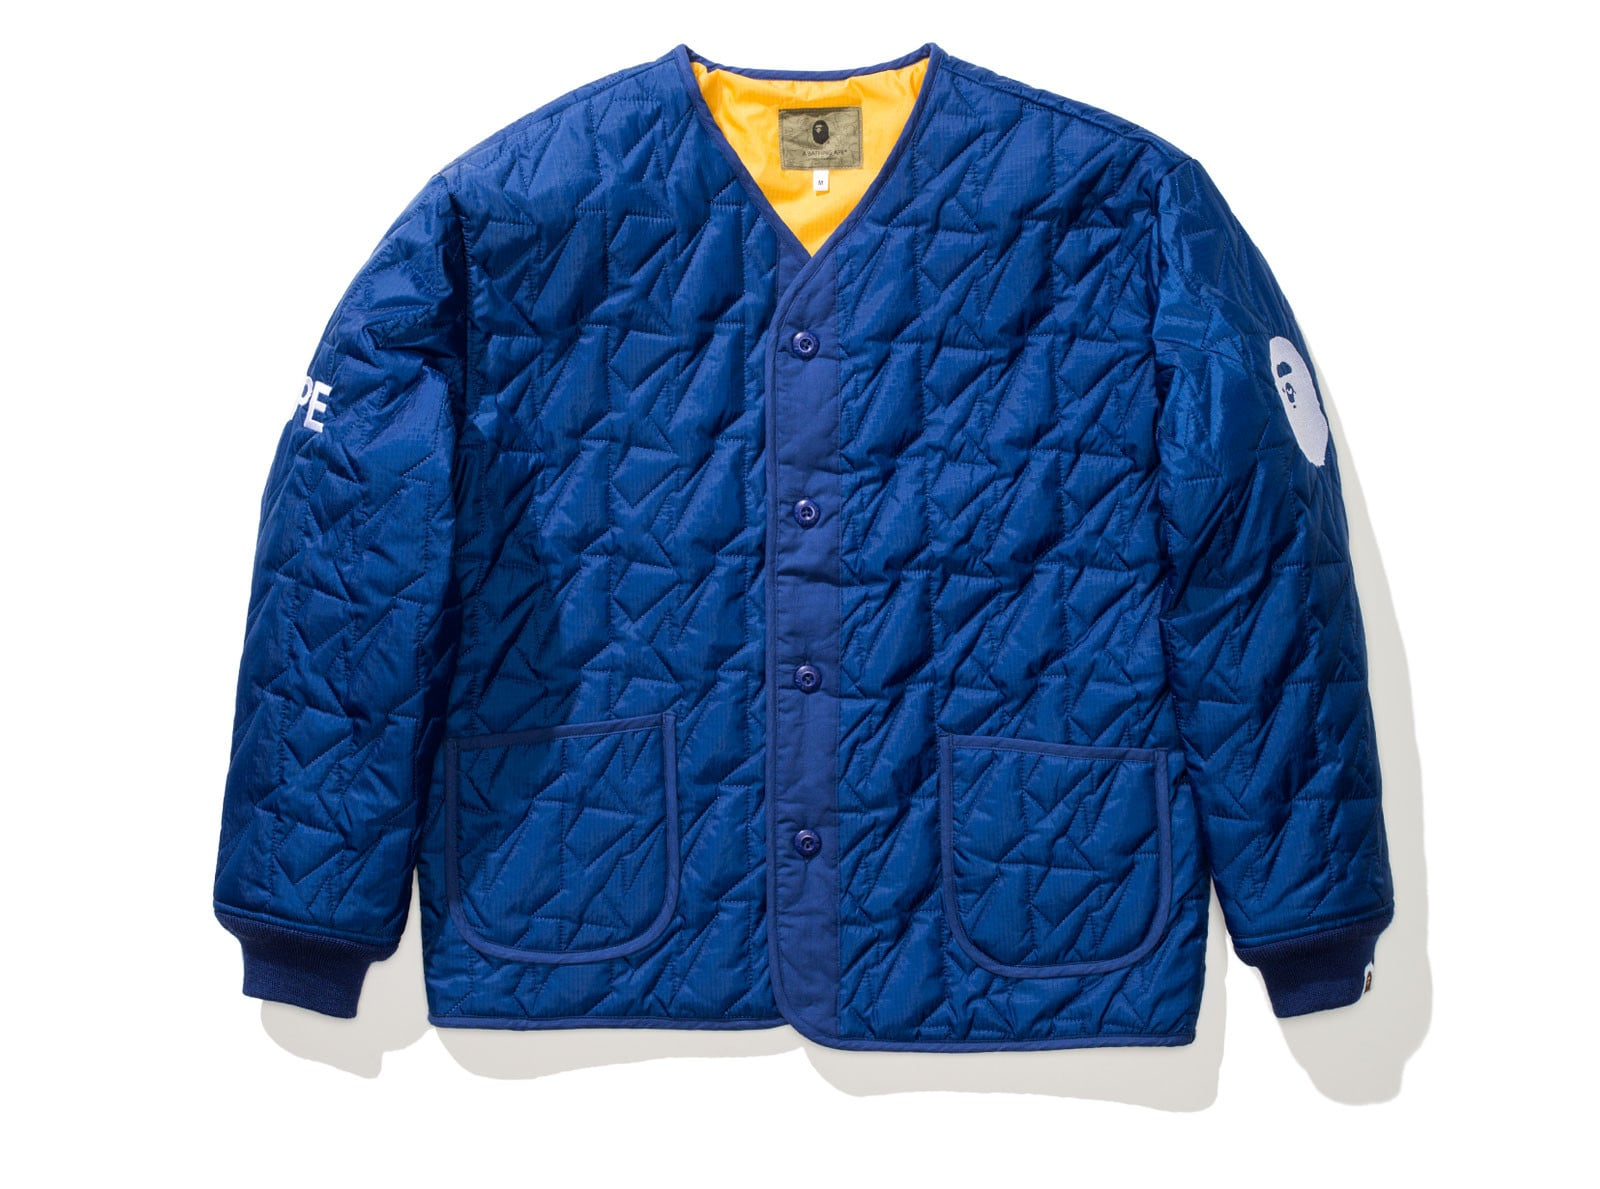 BAPE QUILTED JACKET - NAVY